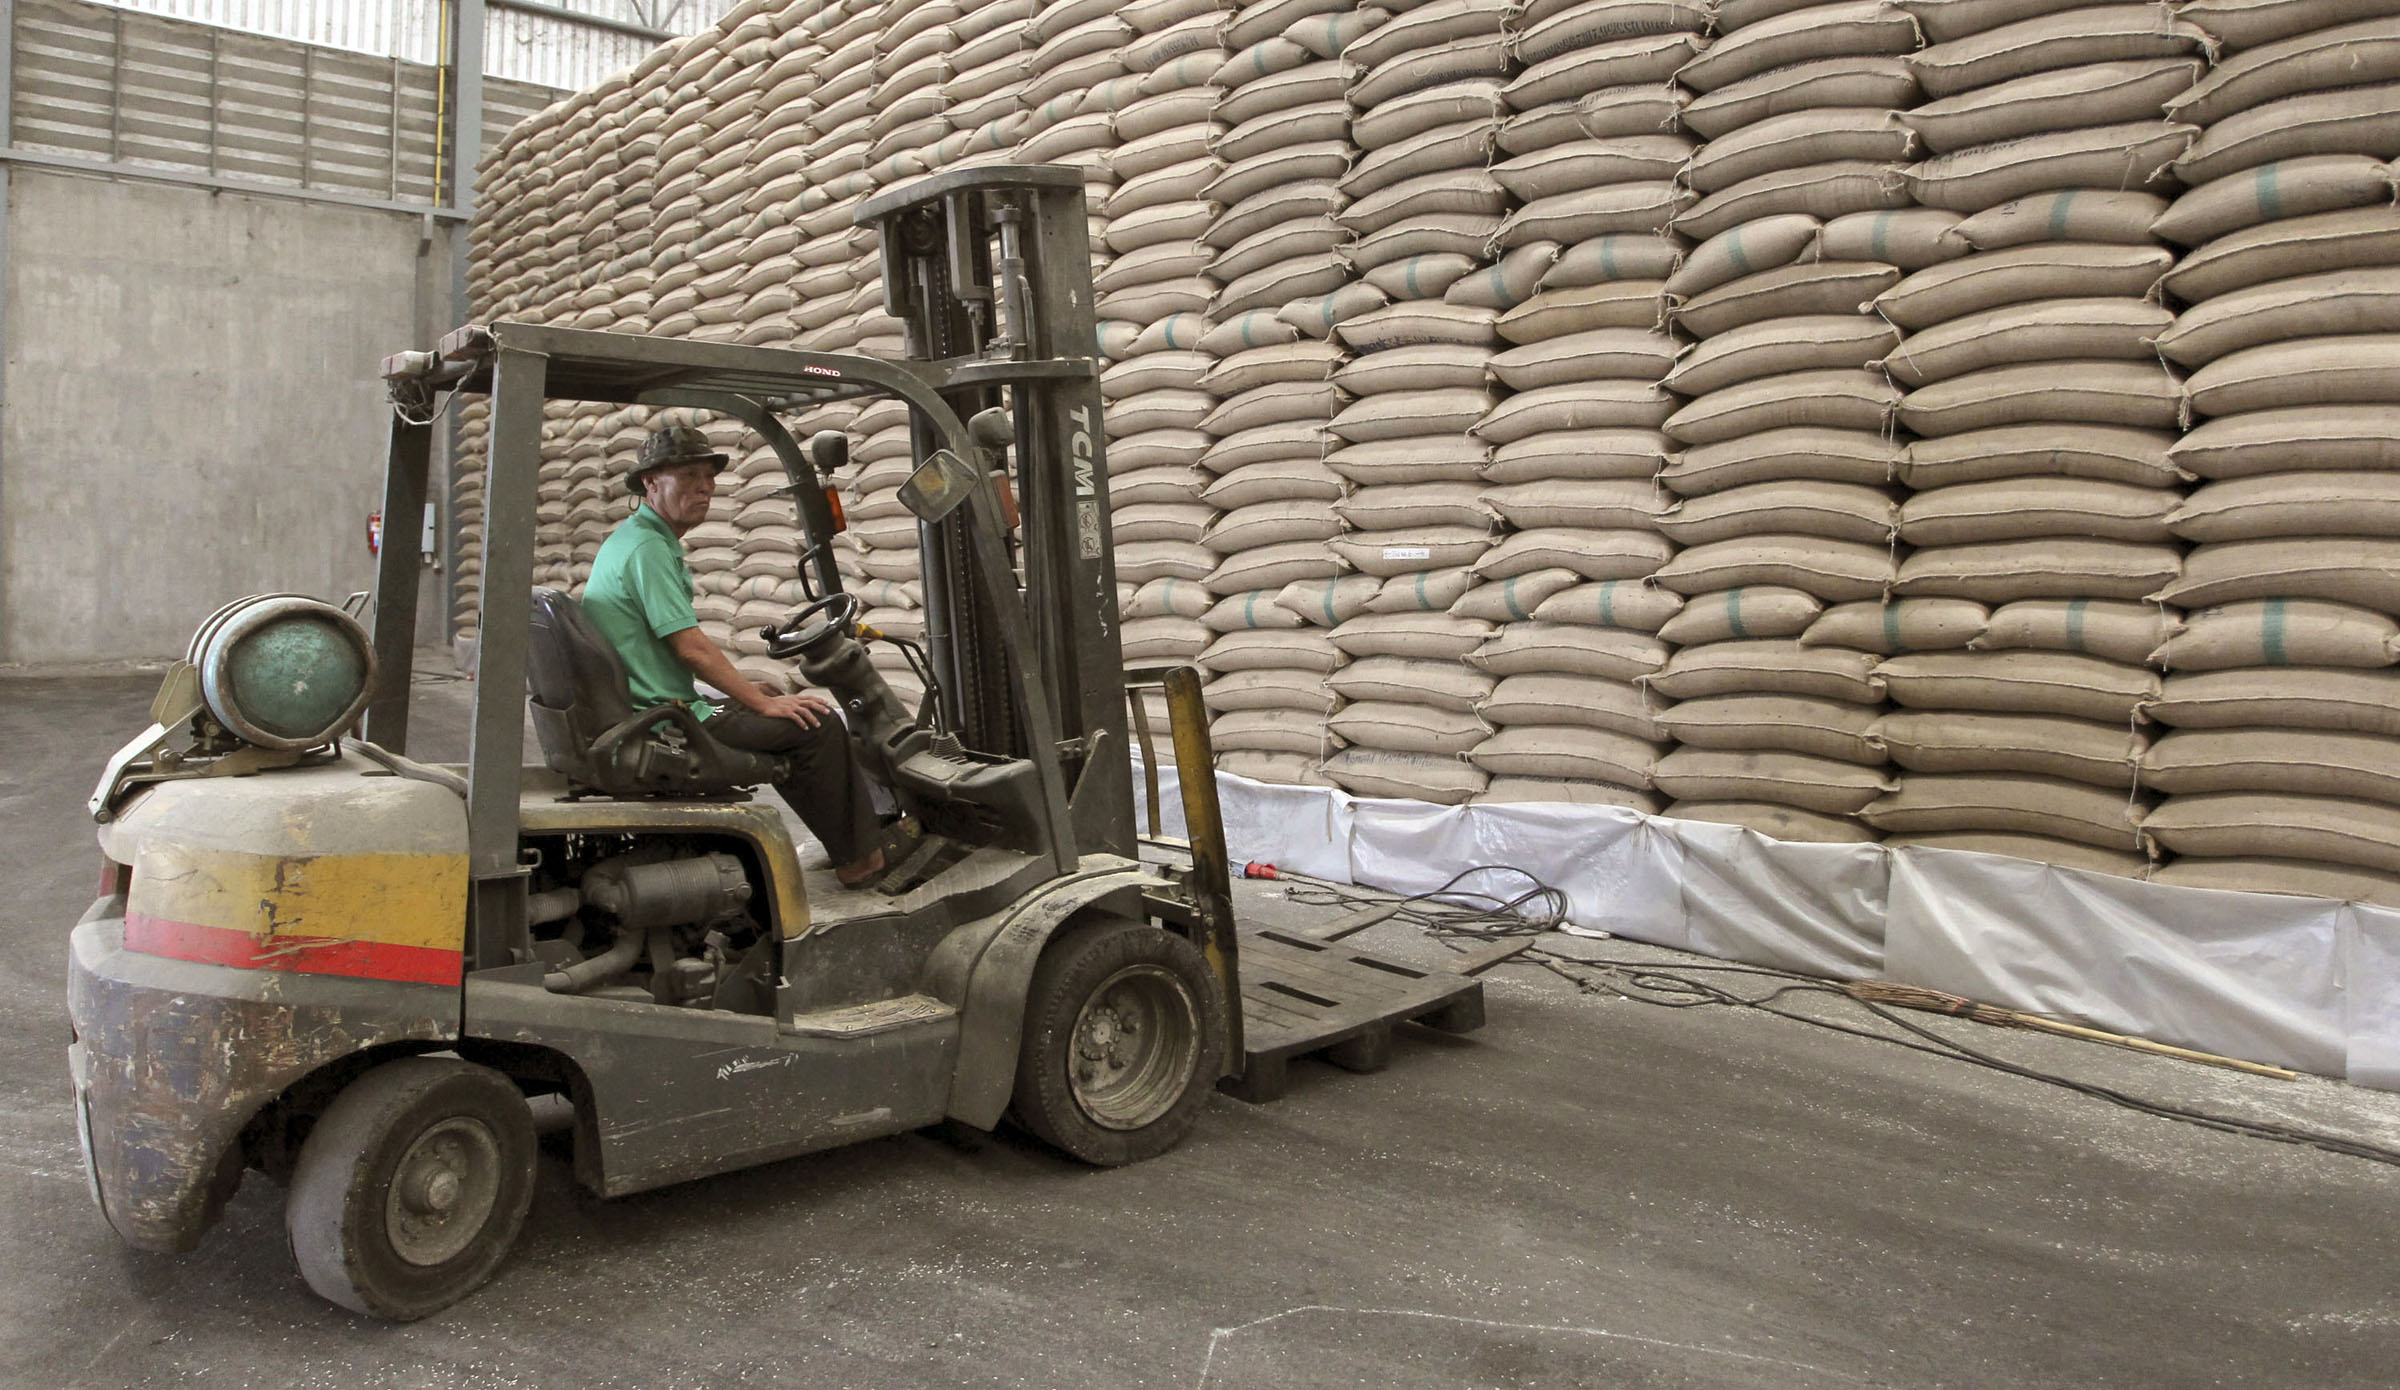 A worker loperates a forklift during an inspection of the rice stockpile at a warehouse Thursday, June 27, 2013, in Pathum Thani province, central Thailand. The Thai government said last week that it will pay farmers 12,000 baht ($389) per ton of rice, compared to the current price of 15,000 baht ($486), to reduce the losses from the 2011-12 subsidy program. The changes were in response to public criticism of the $4.4 billion loss incurred by the subsidy program, a flagship policy of Prime Minister Yingluck Shinawatra's government to win support from Thai farmers. (AP Photo/Apichart Weerawong)